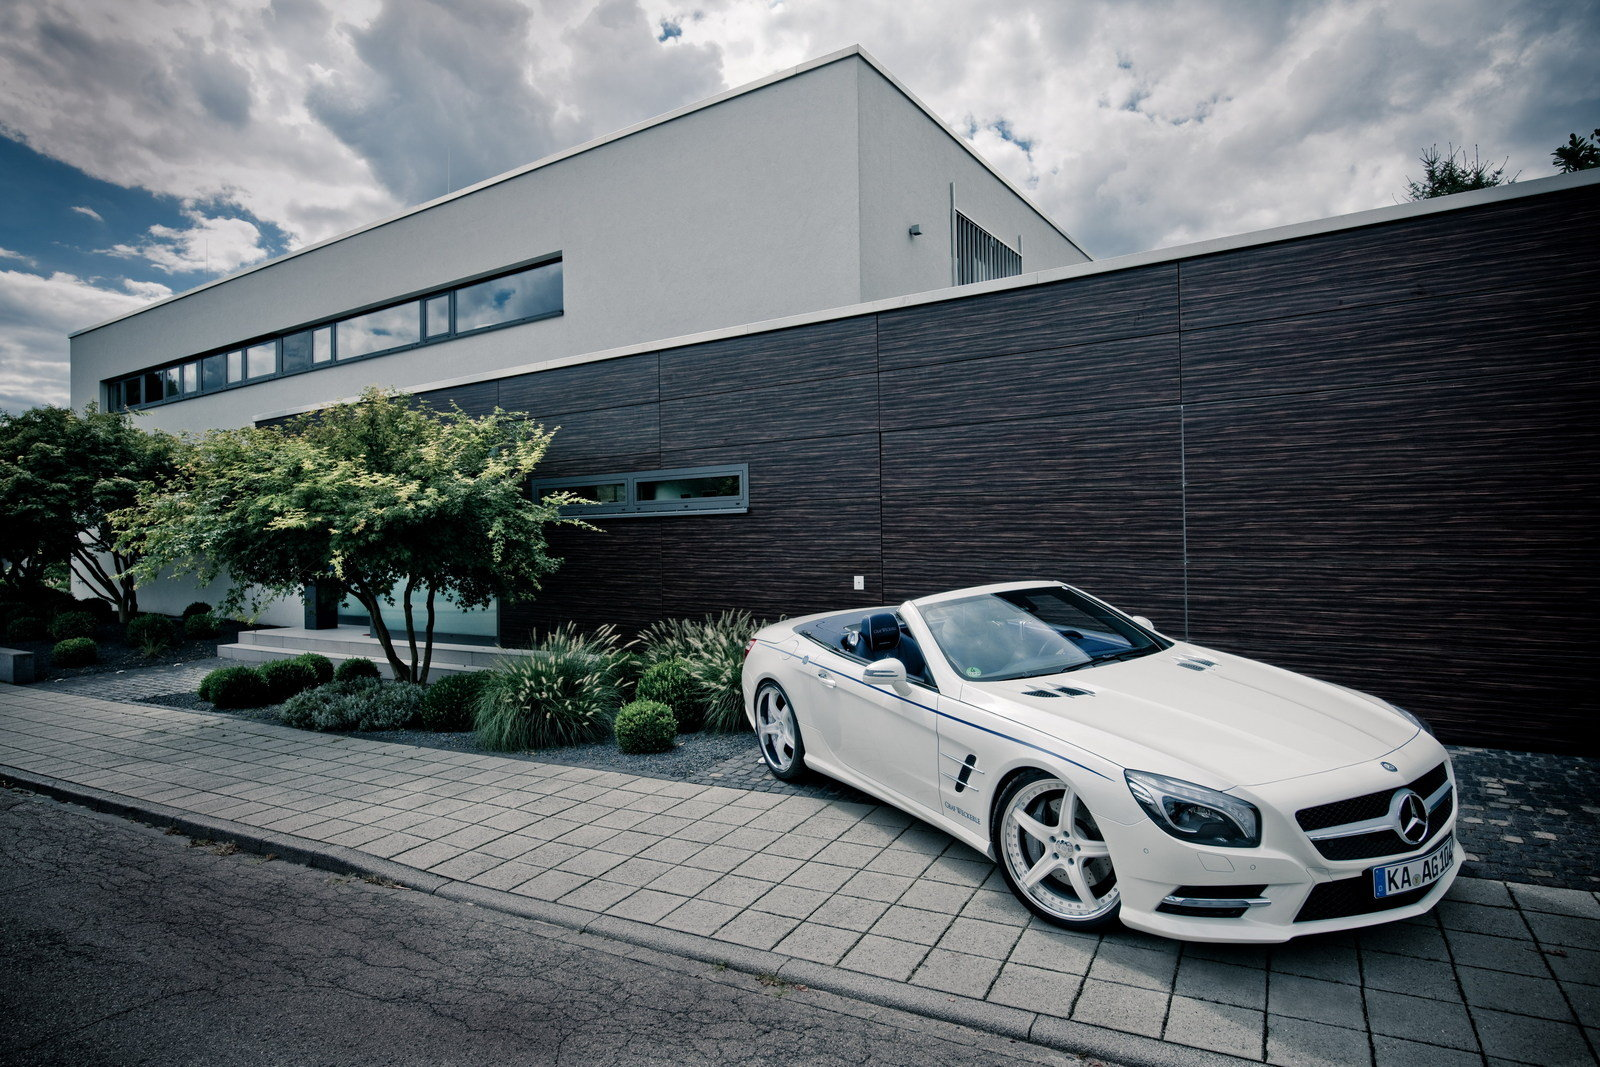 2013 mercedes benz sl maritime by graf weckerle picture for Maritime motors used cars